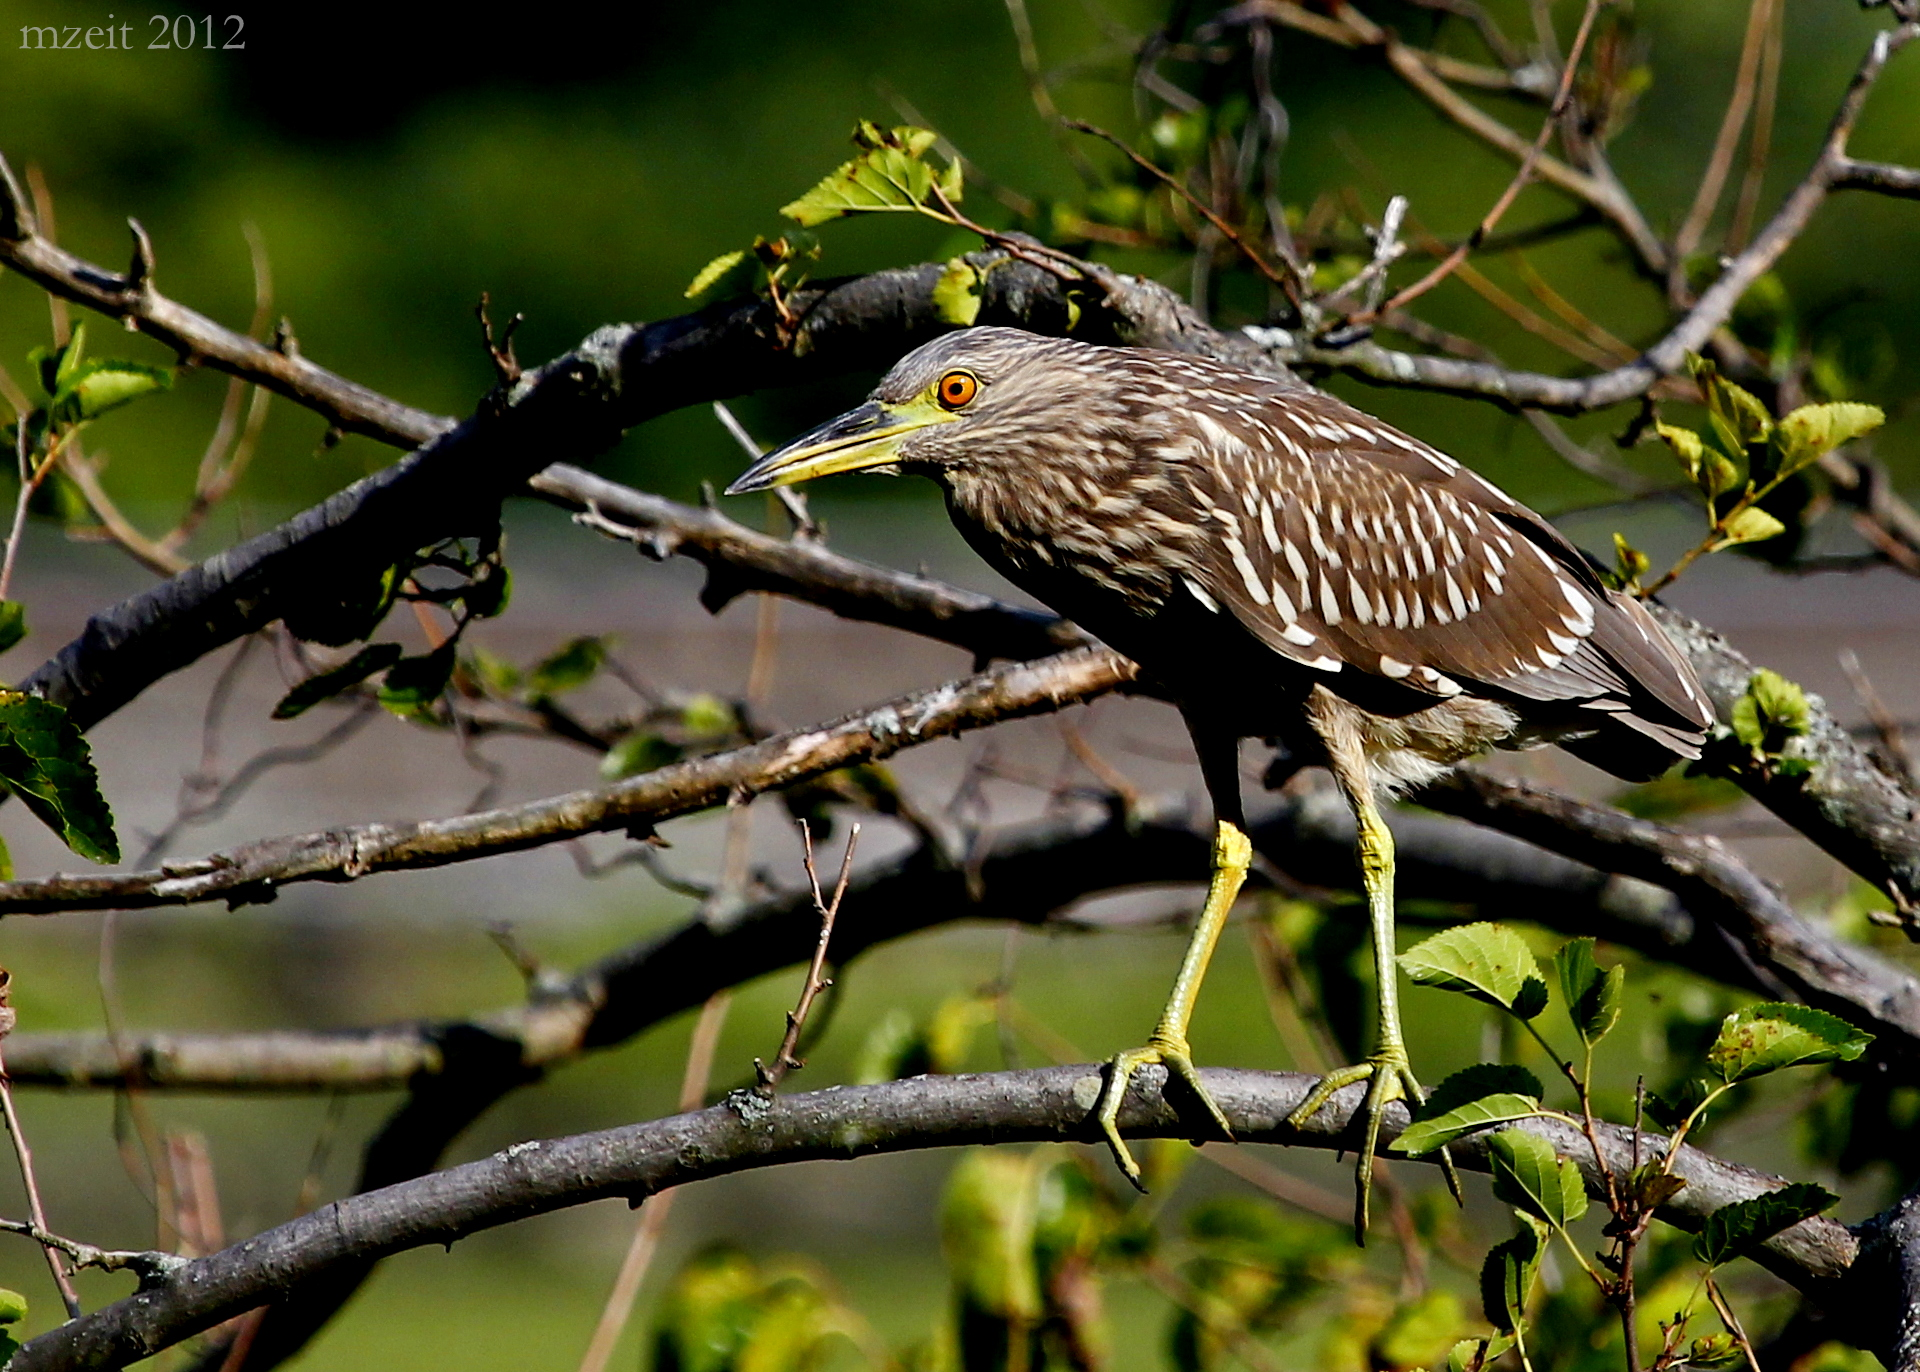 A young Black-Crowned Night-heron out during the day at Dennings Point in Beacon NY.